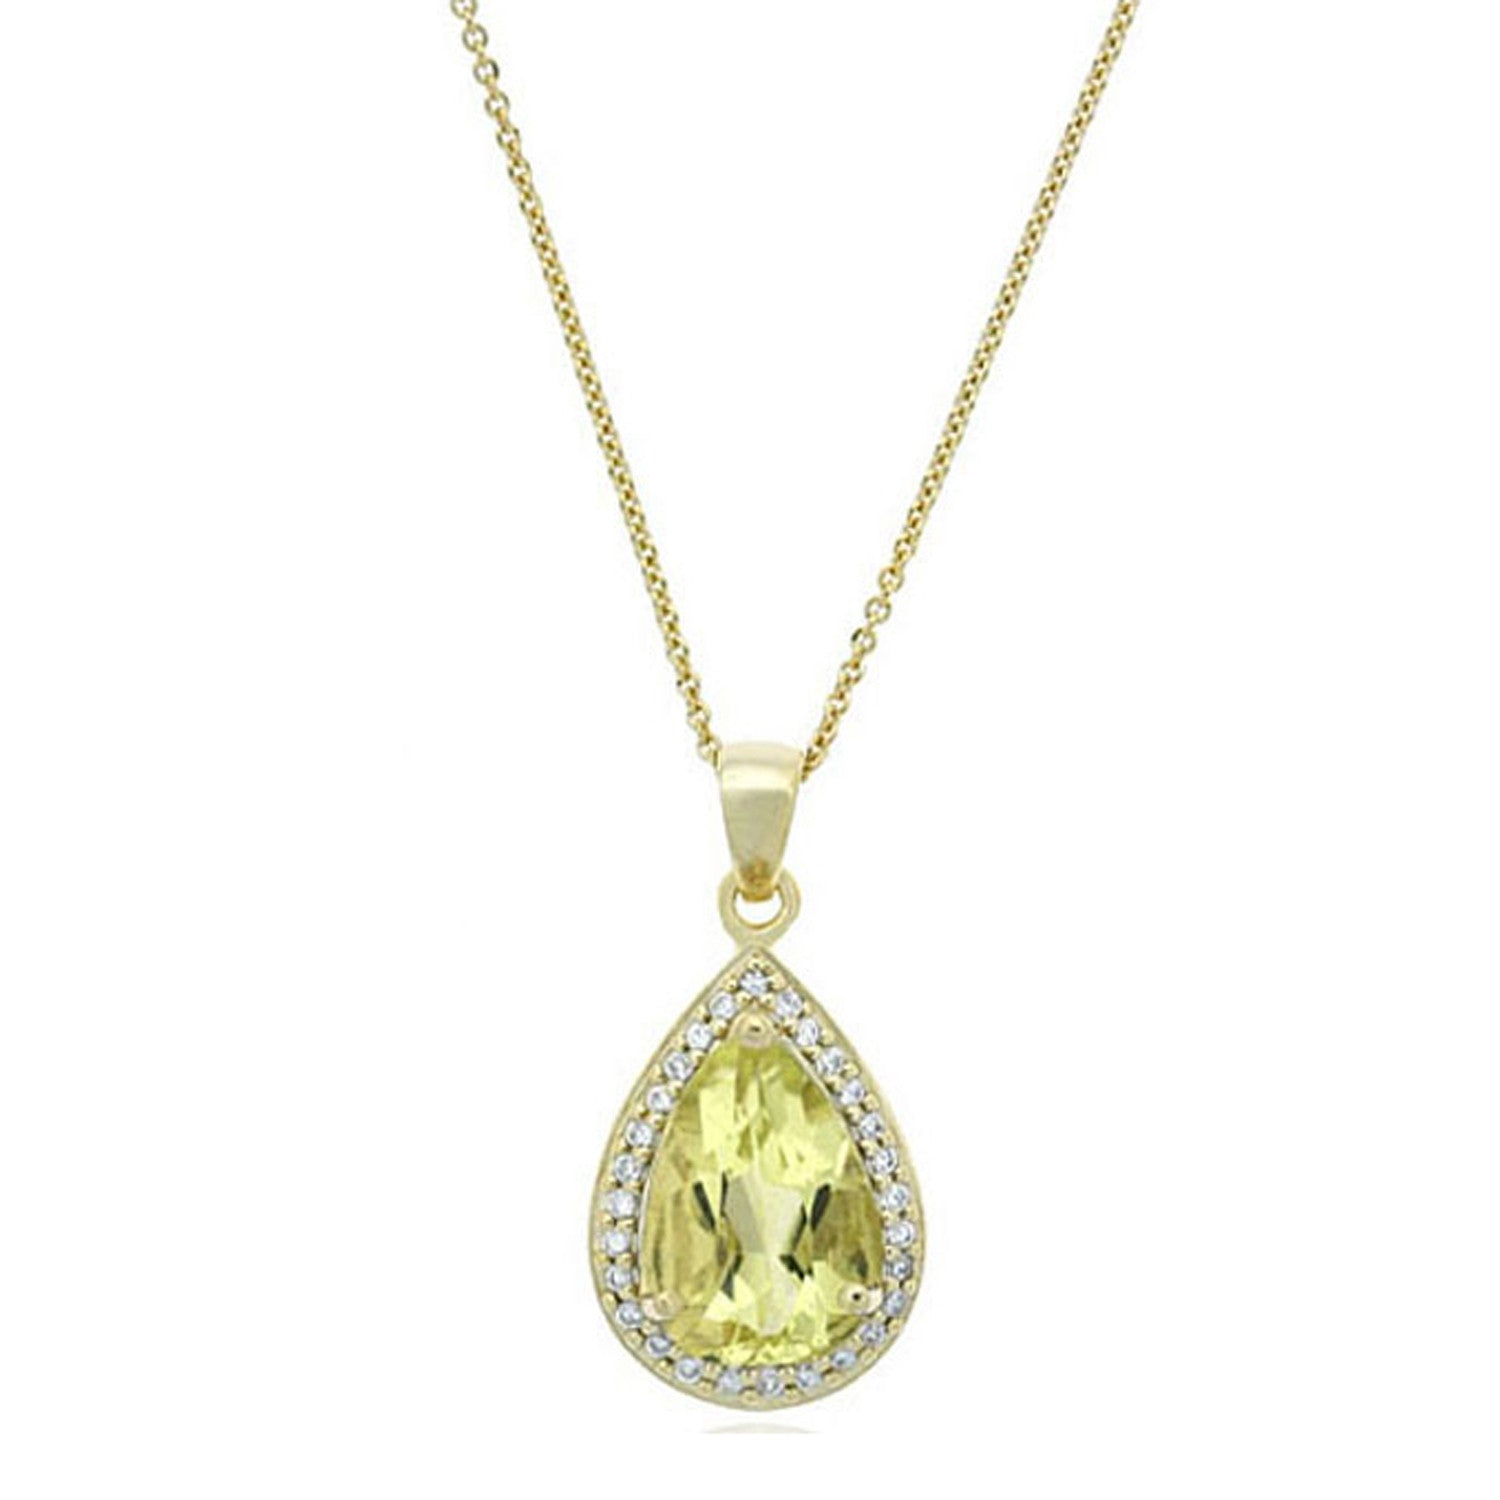 Teardrop Necklace With Cubic Zirconia & Gemstone Accents - 18k Gold / Lime Quartz